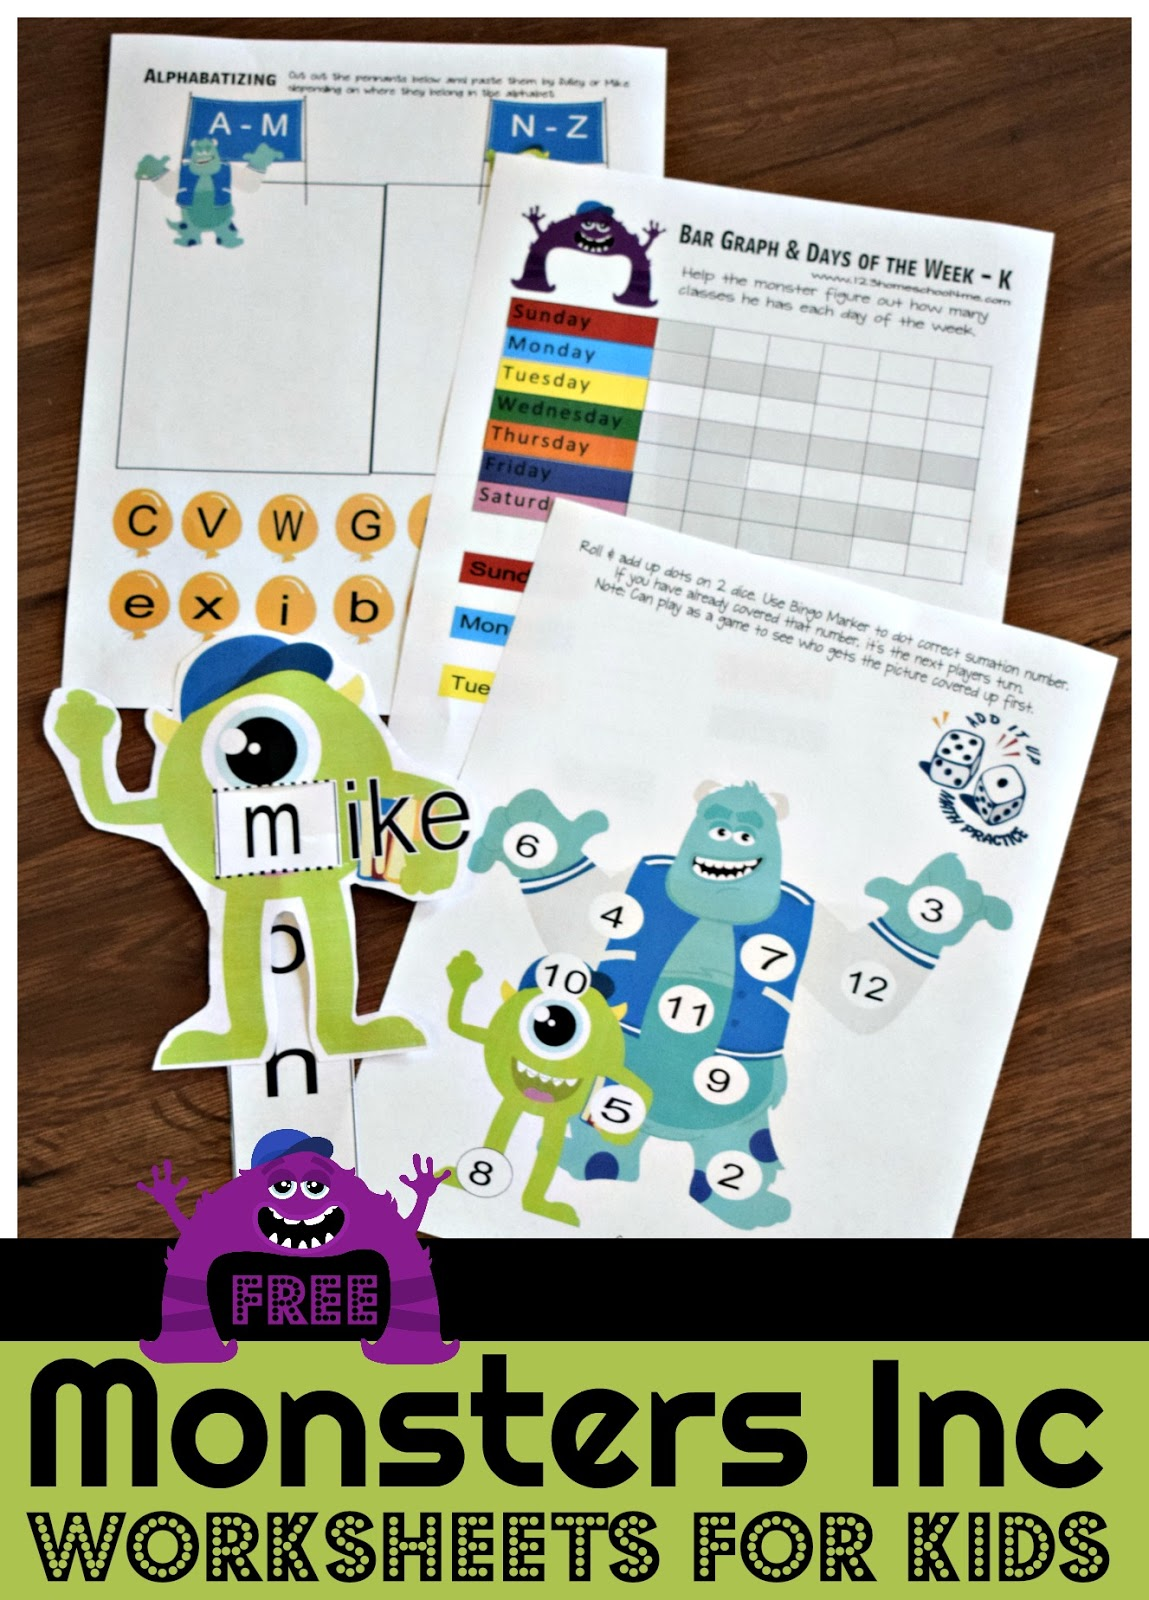 FREE Monsters Inc. Worksheets for Kids